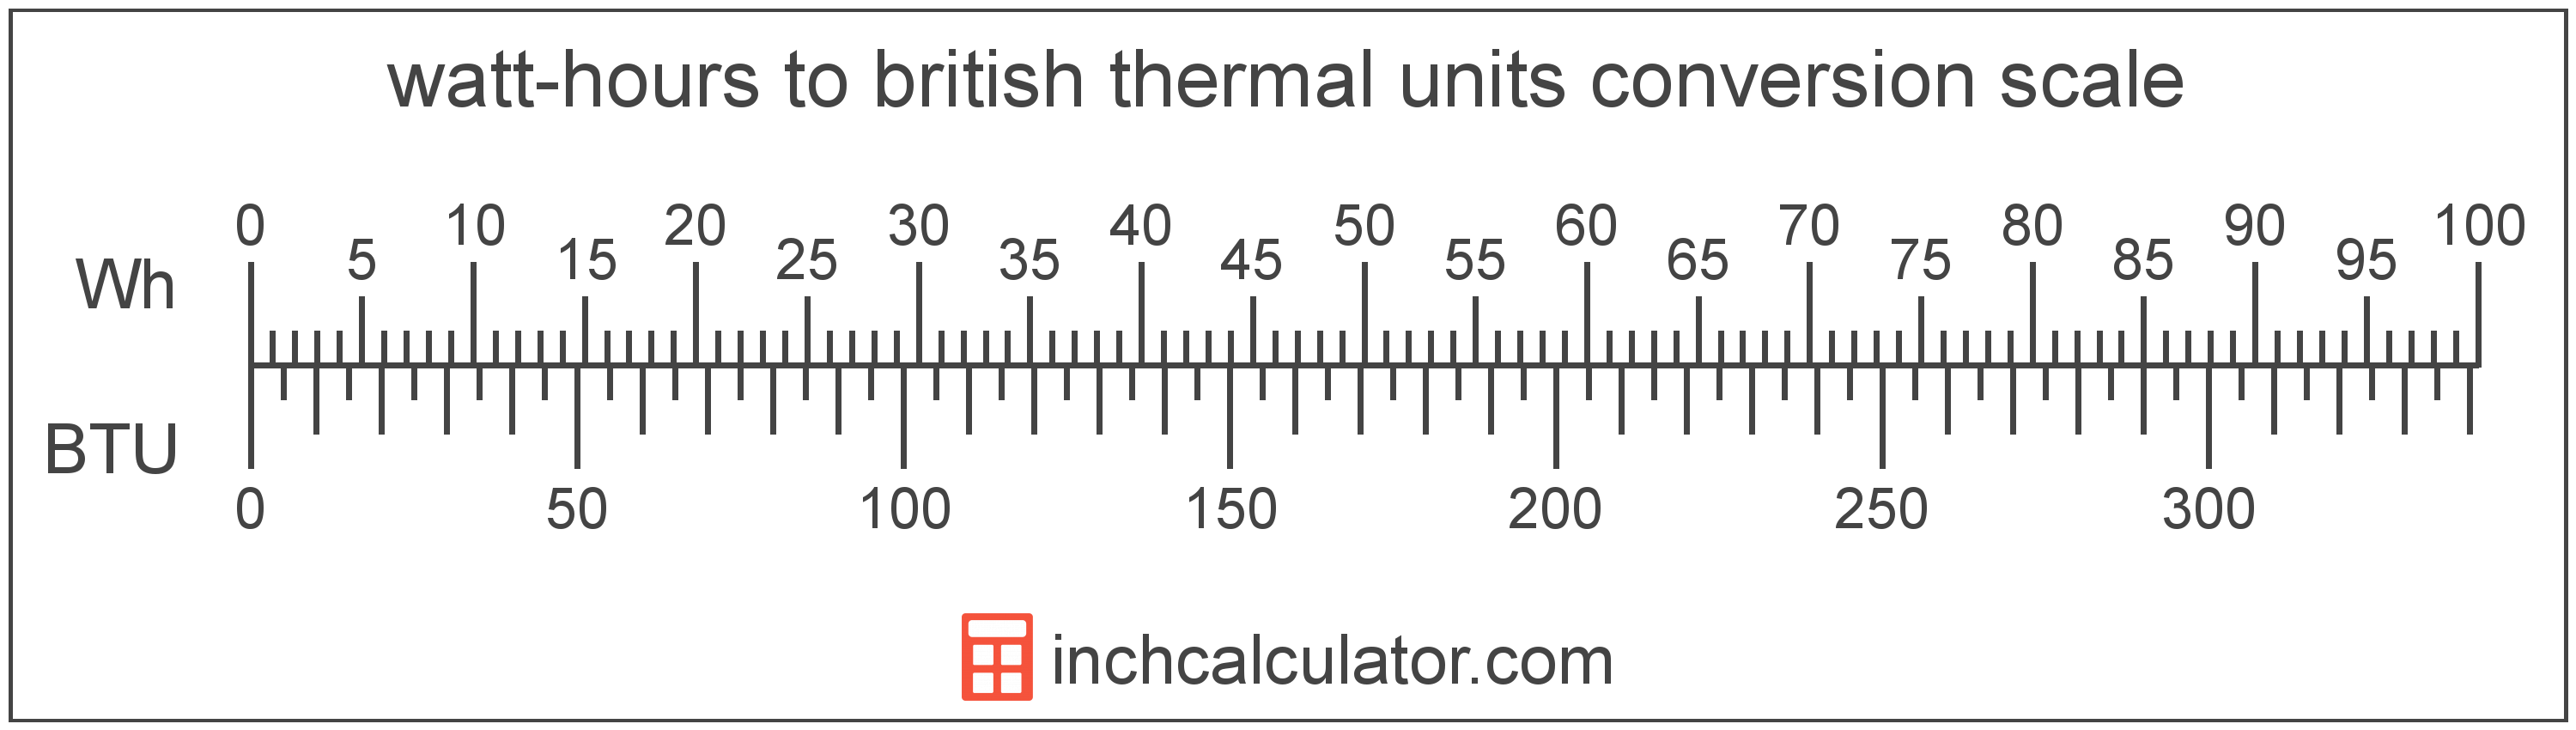 conversion scale showing british thermal units and equivalent watt-hours energy values